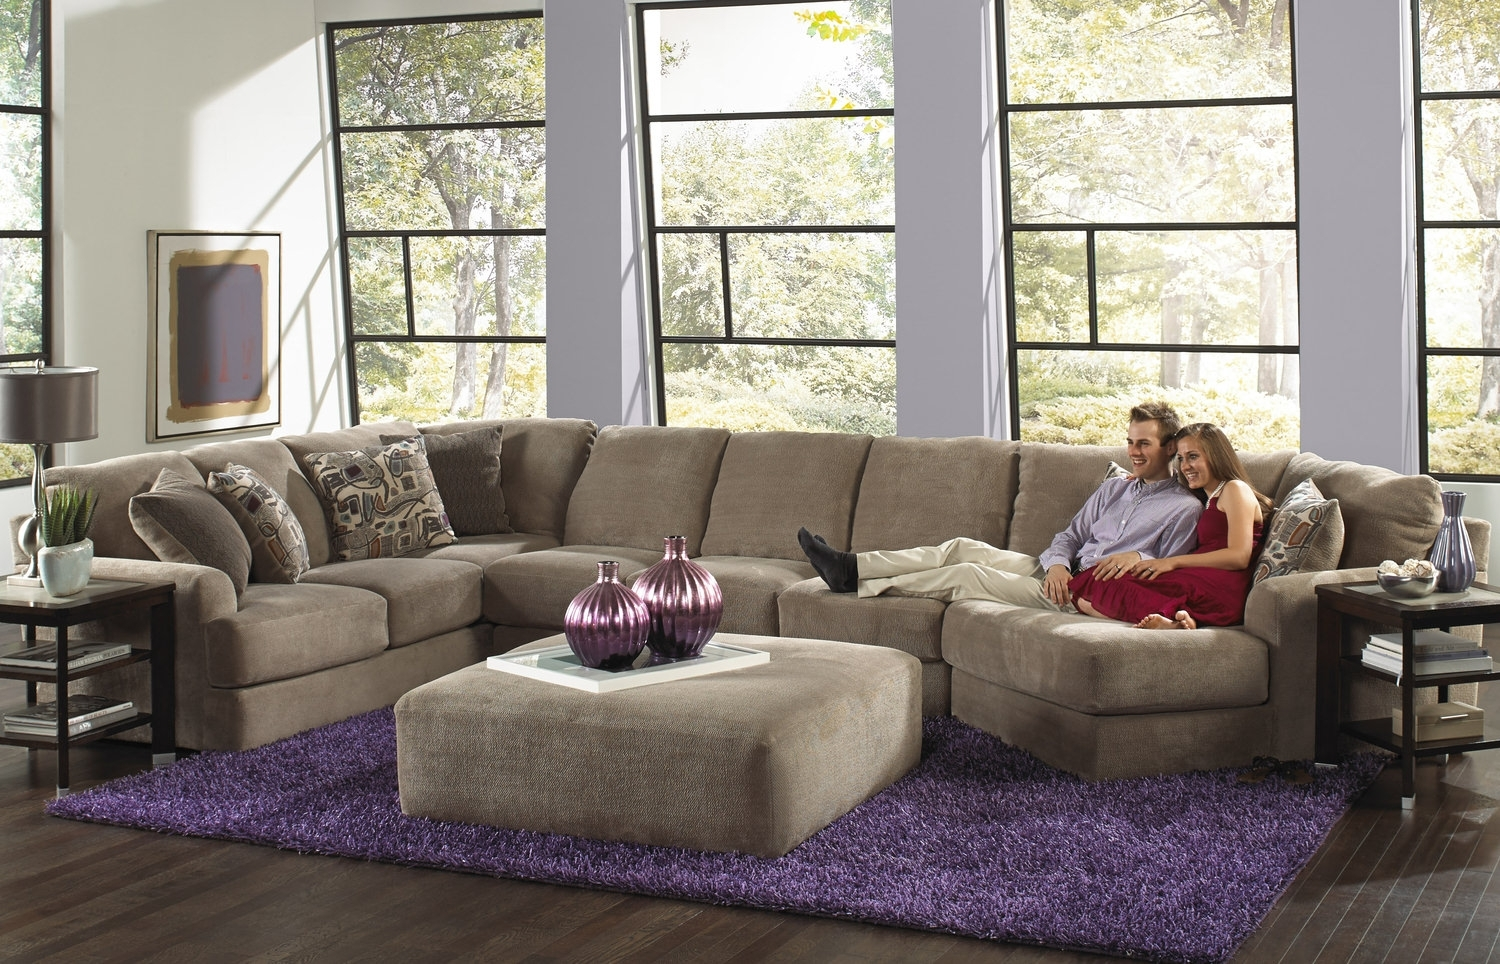 Regal 3 Piece Modular Sectional | Hom Furniture In Haven 3 Piece Sectionals (Image 20 of 25)